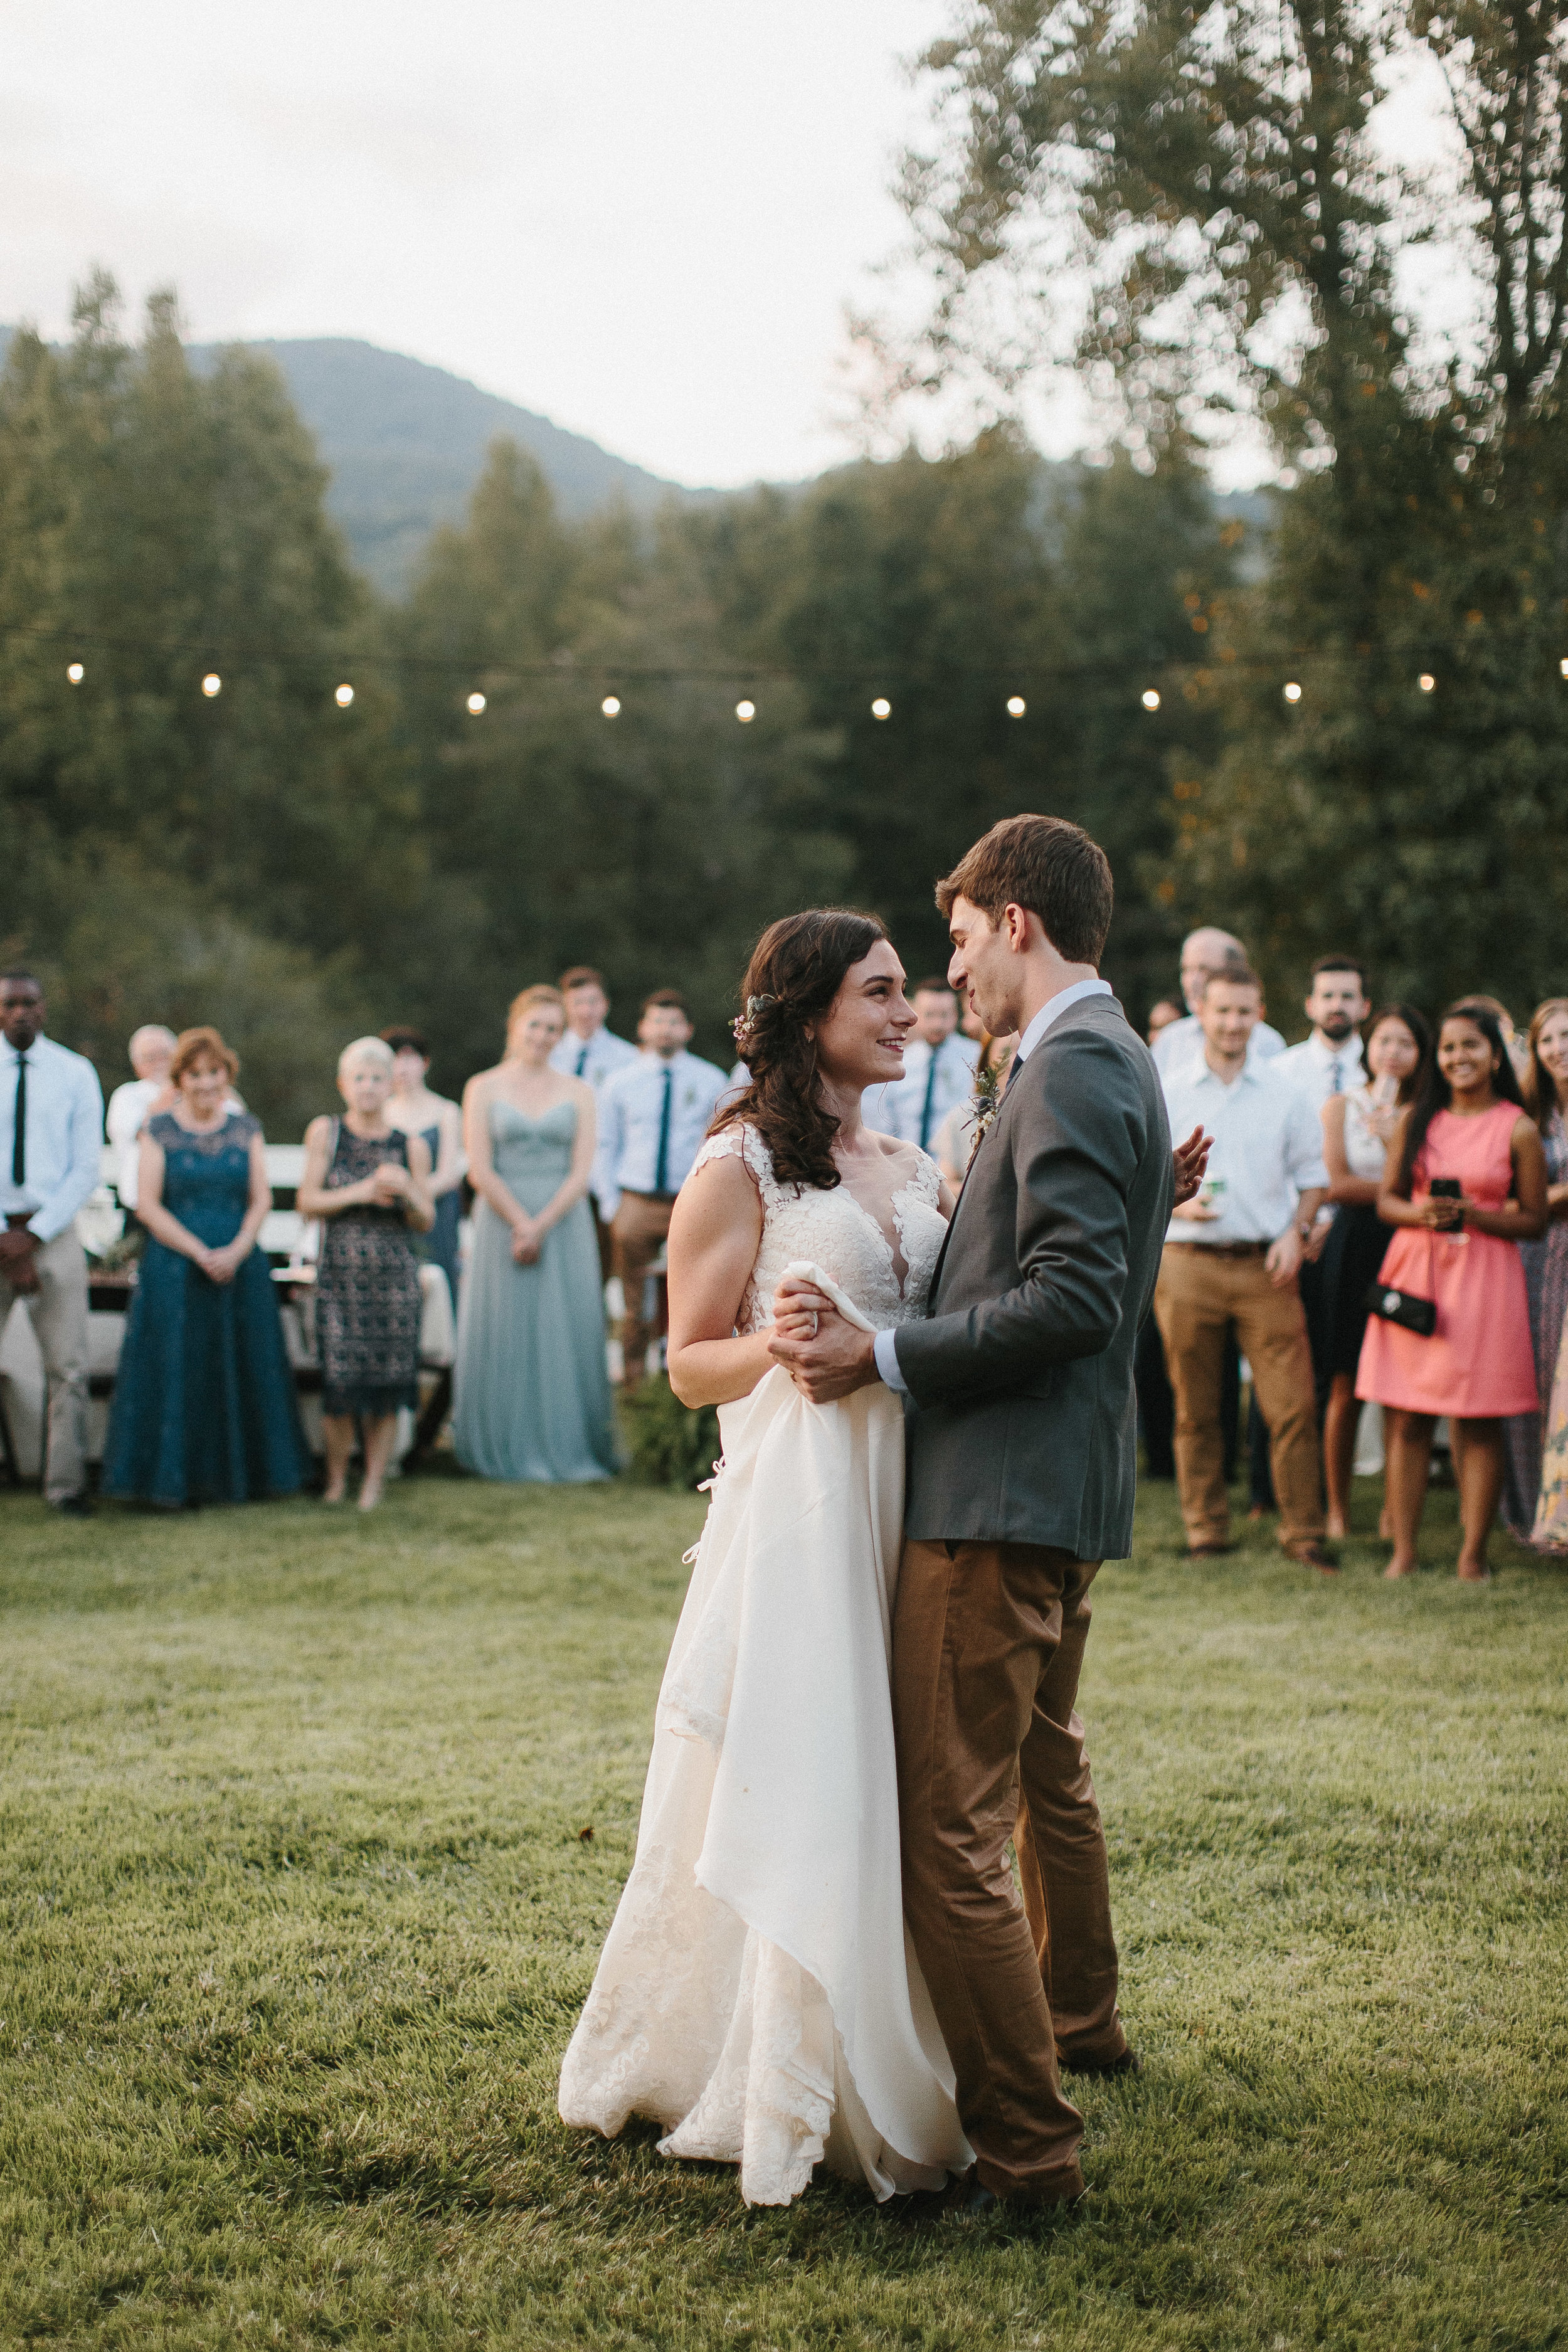 cleveland_georgia_mountain_laurel_farm_natural_classic_timeless_documentary_candid_wedding_emotional_photojournalism_river_west_1910.jpg